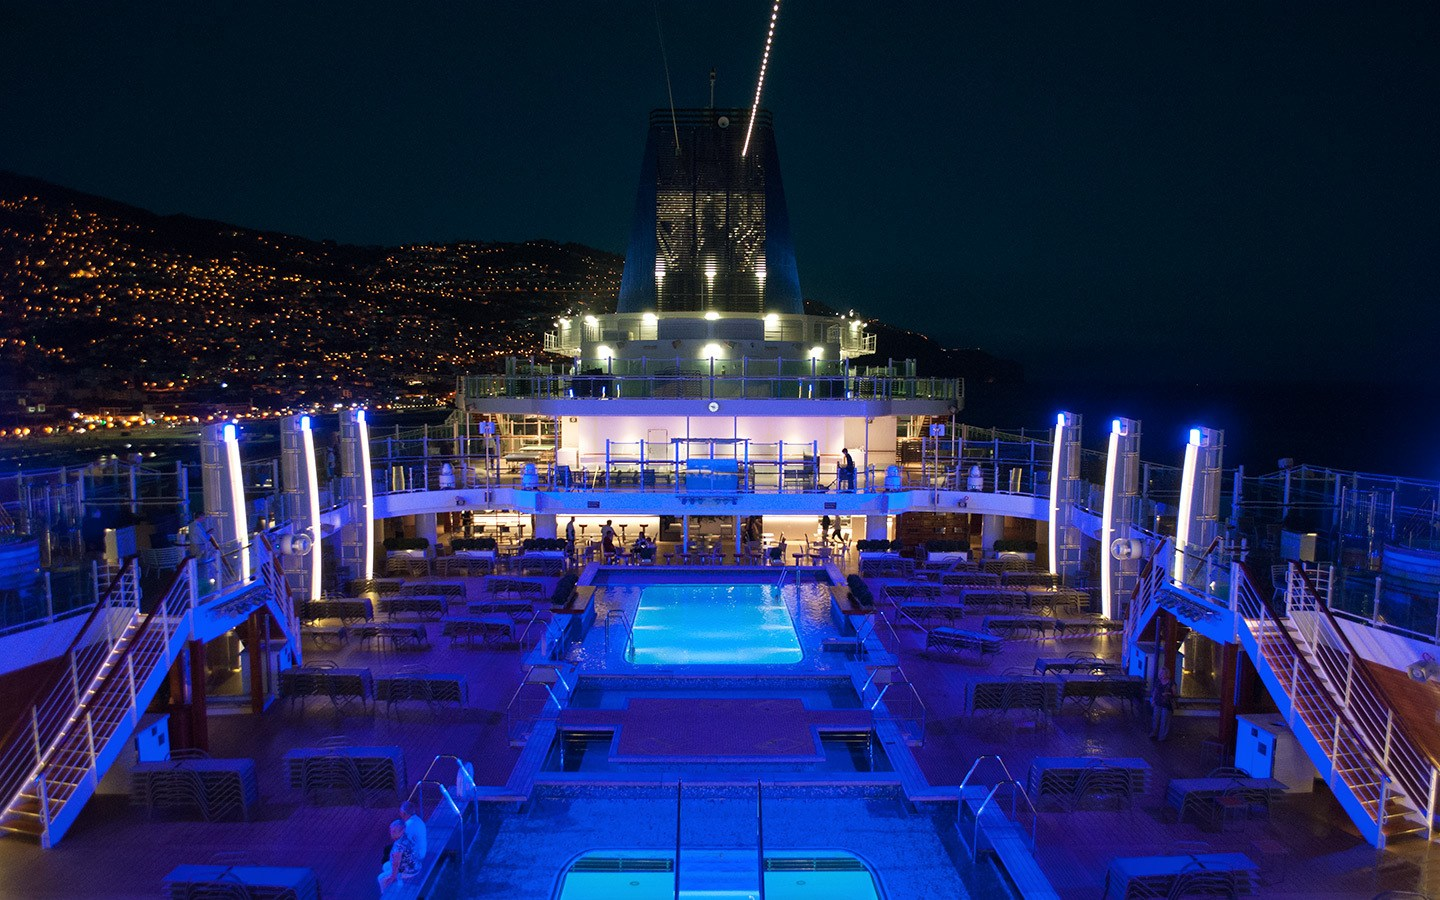 P&O cruise ship at night